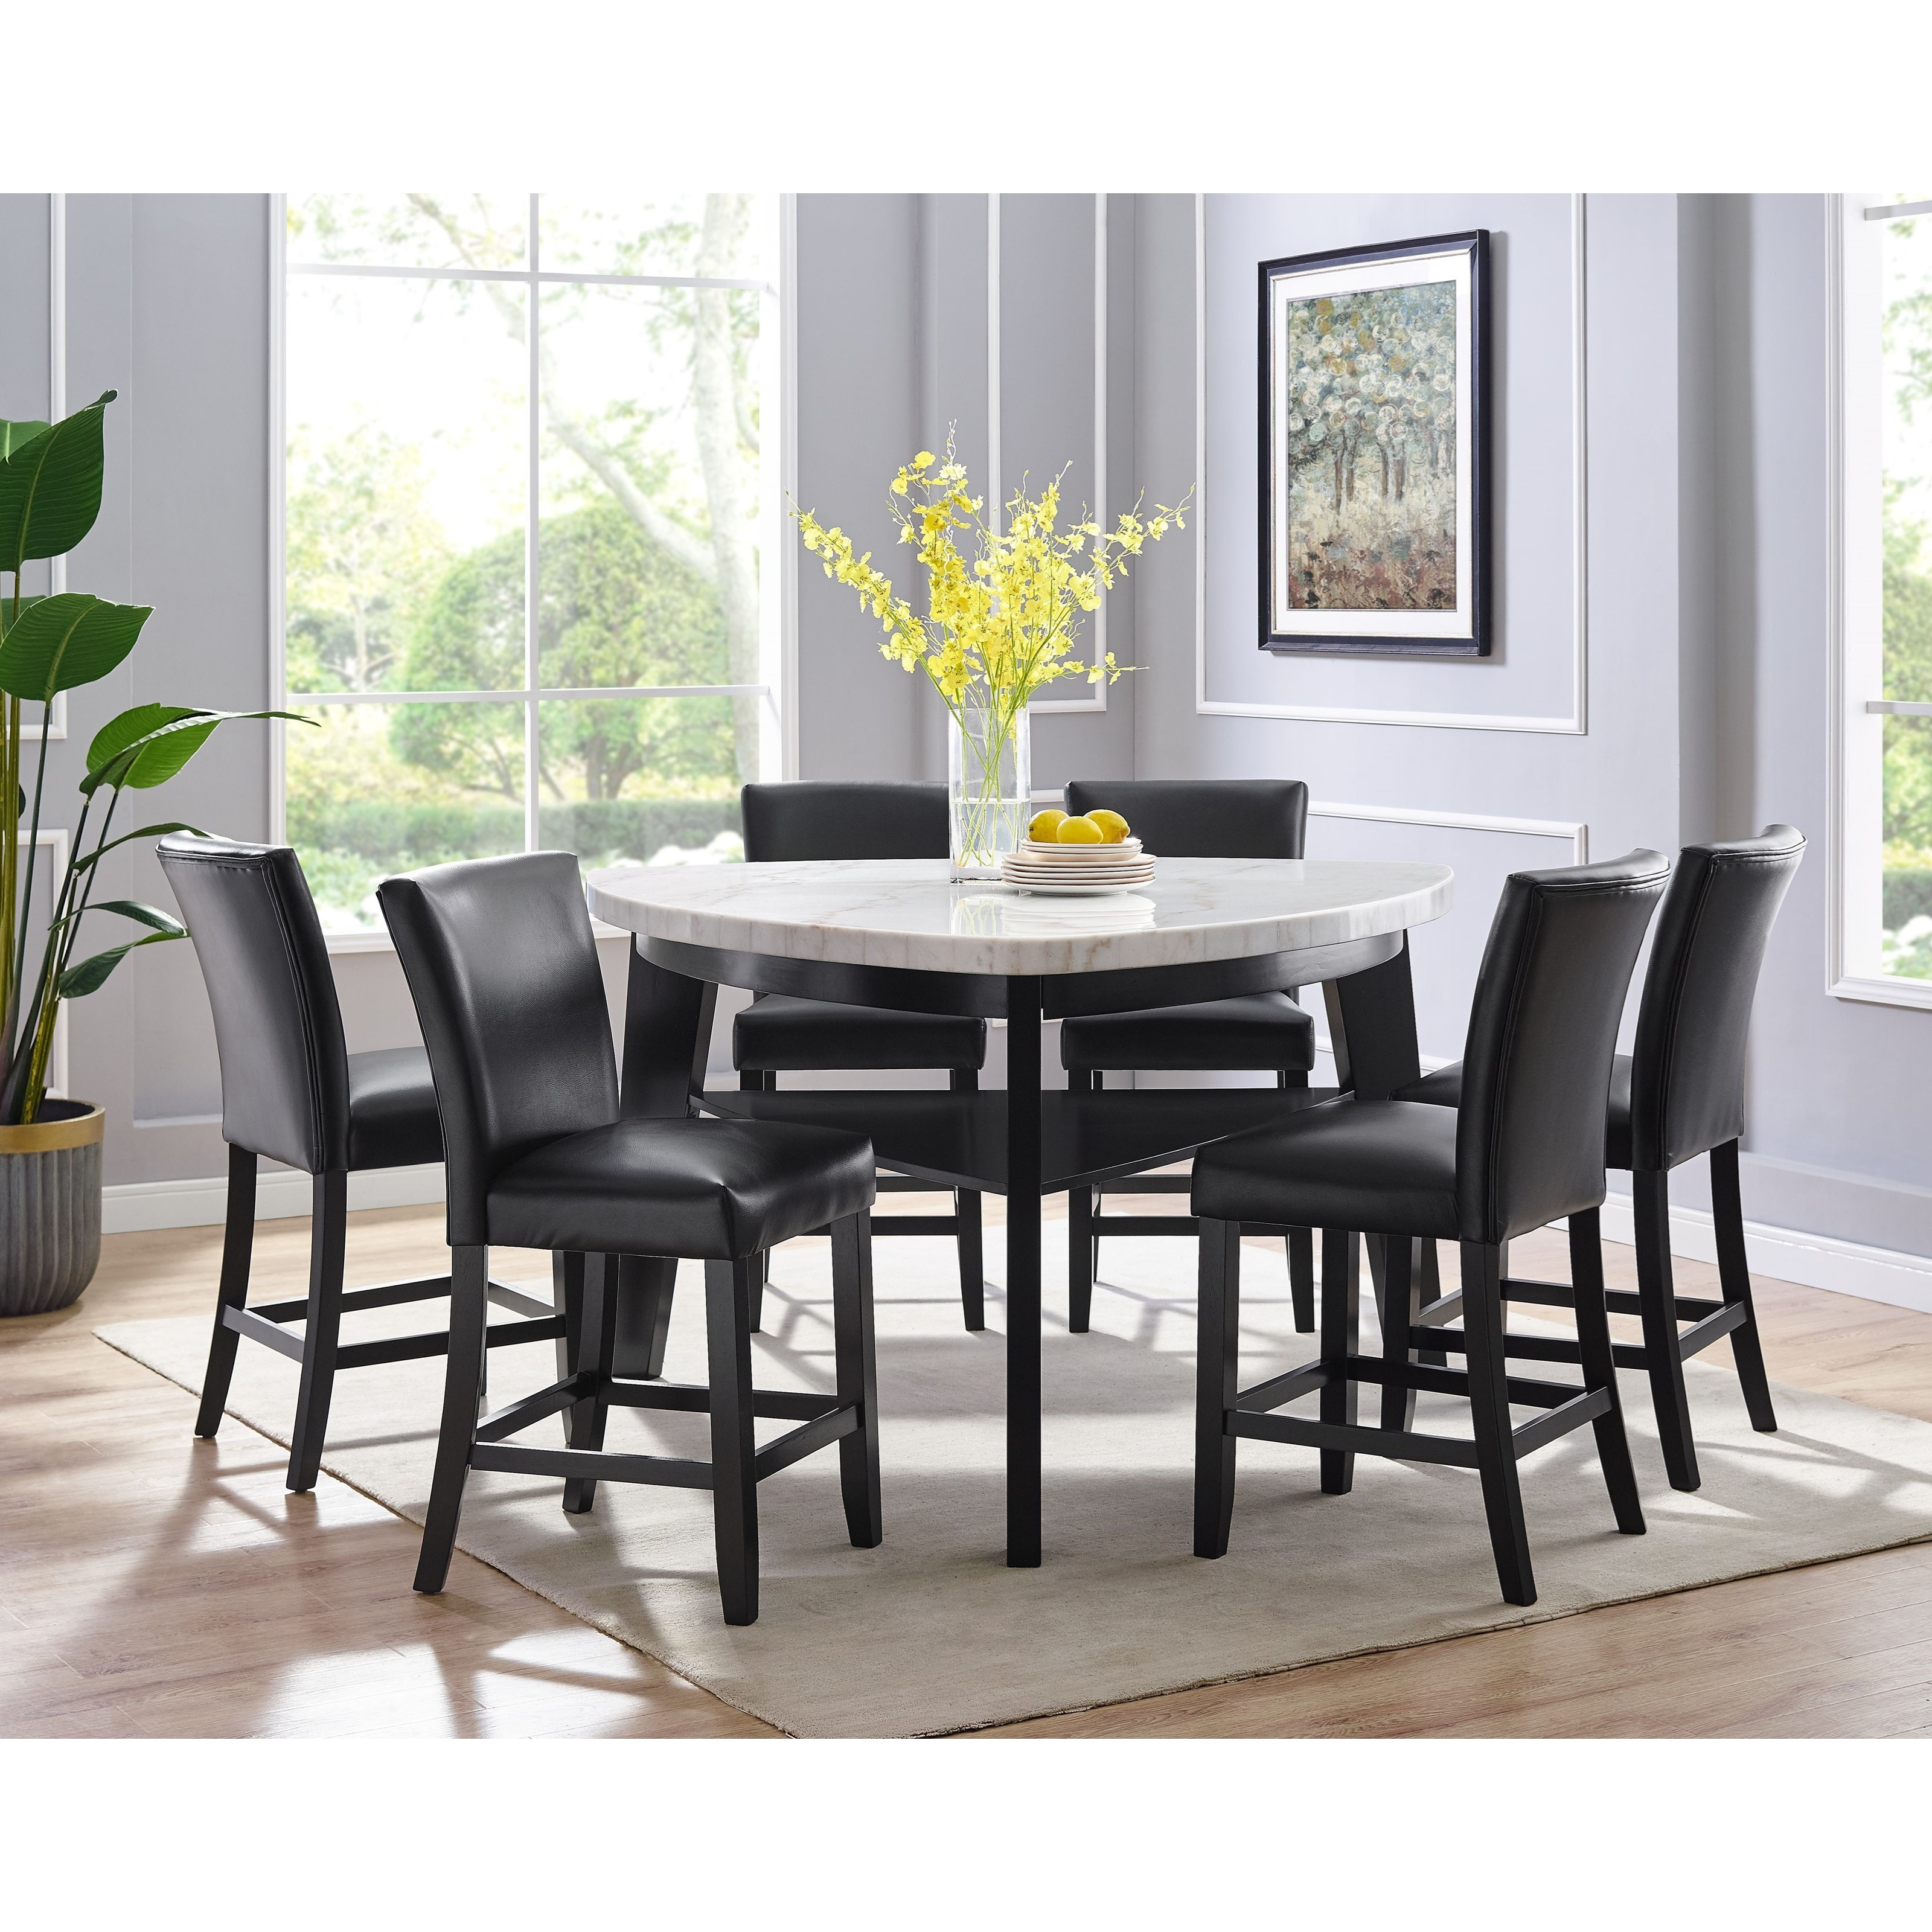 Carrara 7-Piece Dining Set by Steve Silver at Standard Furniture